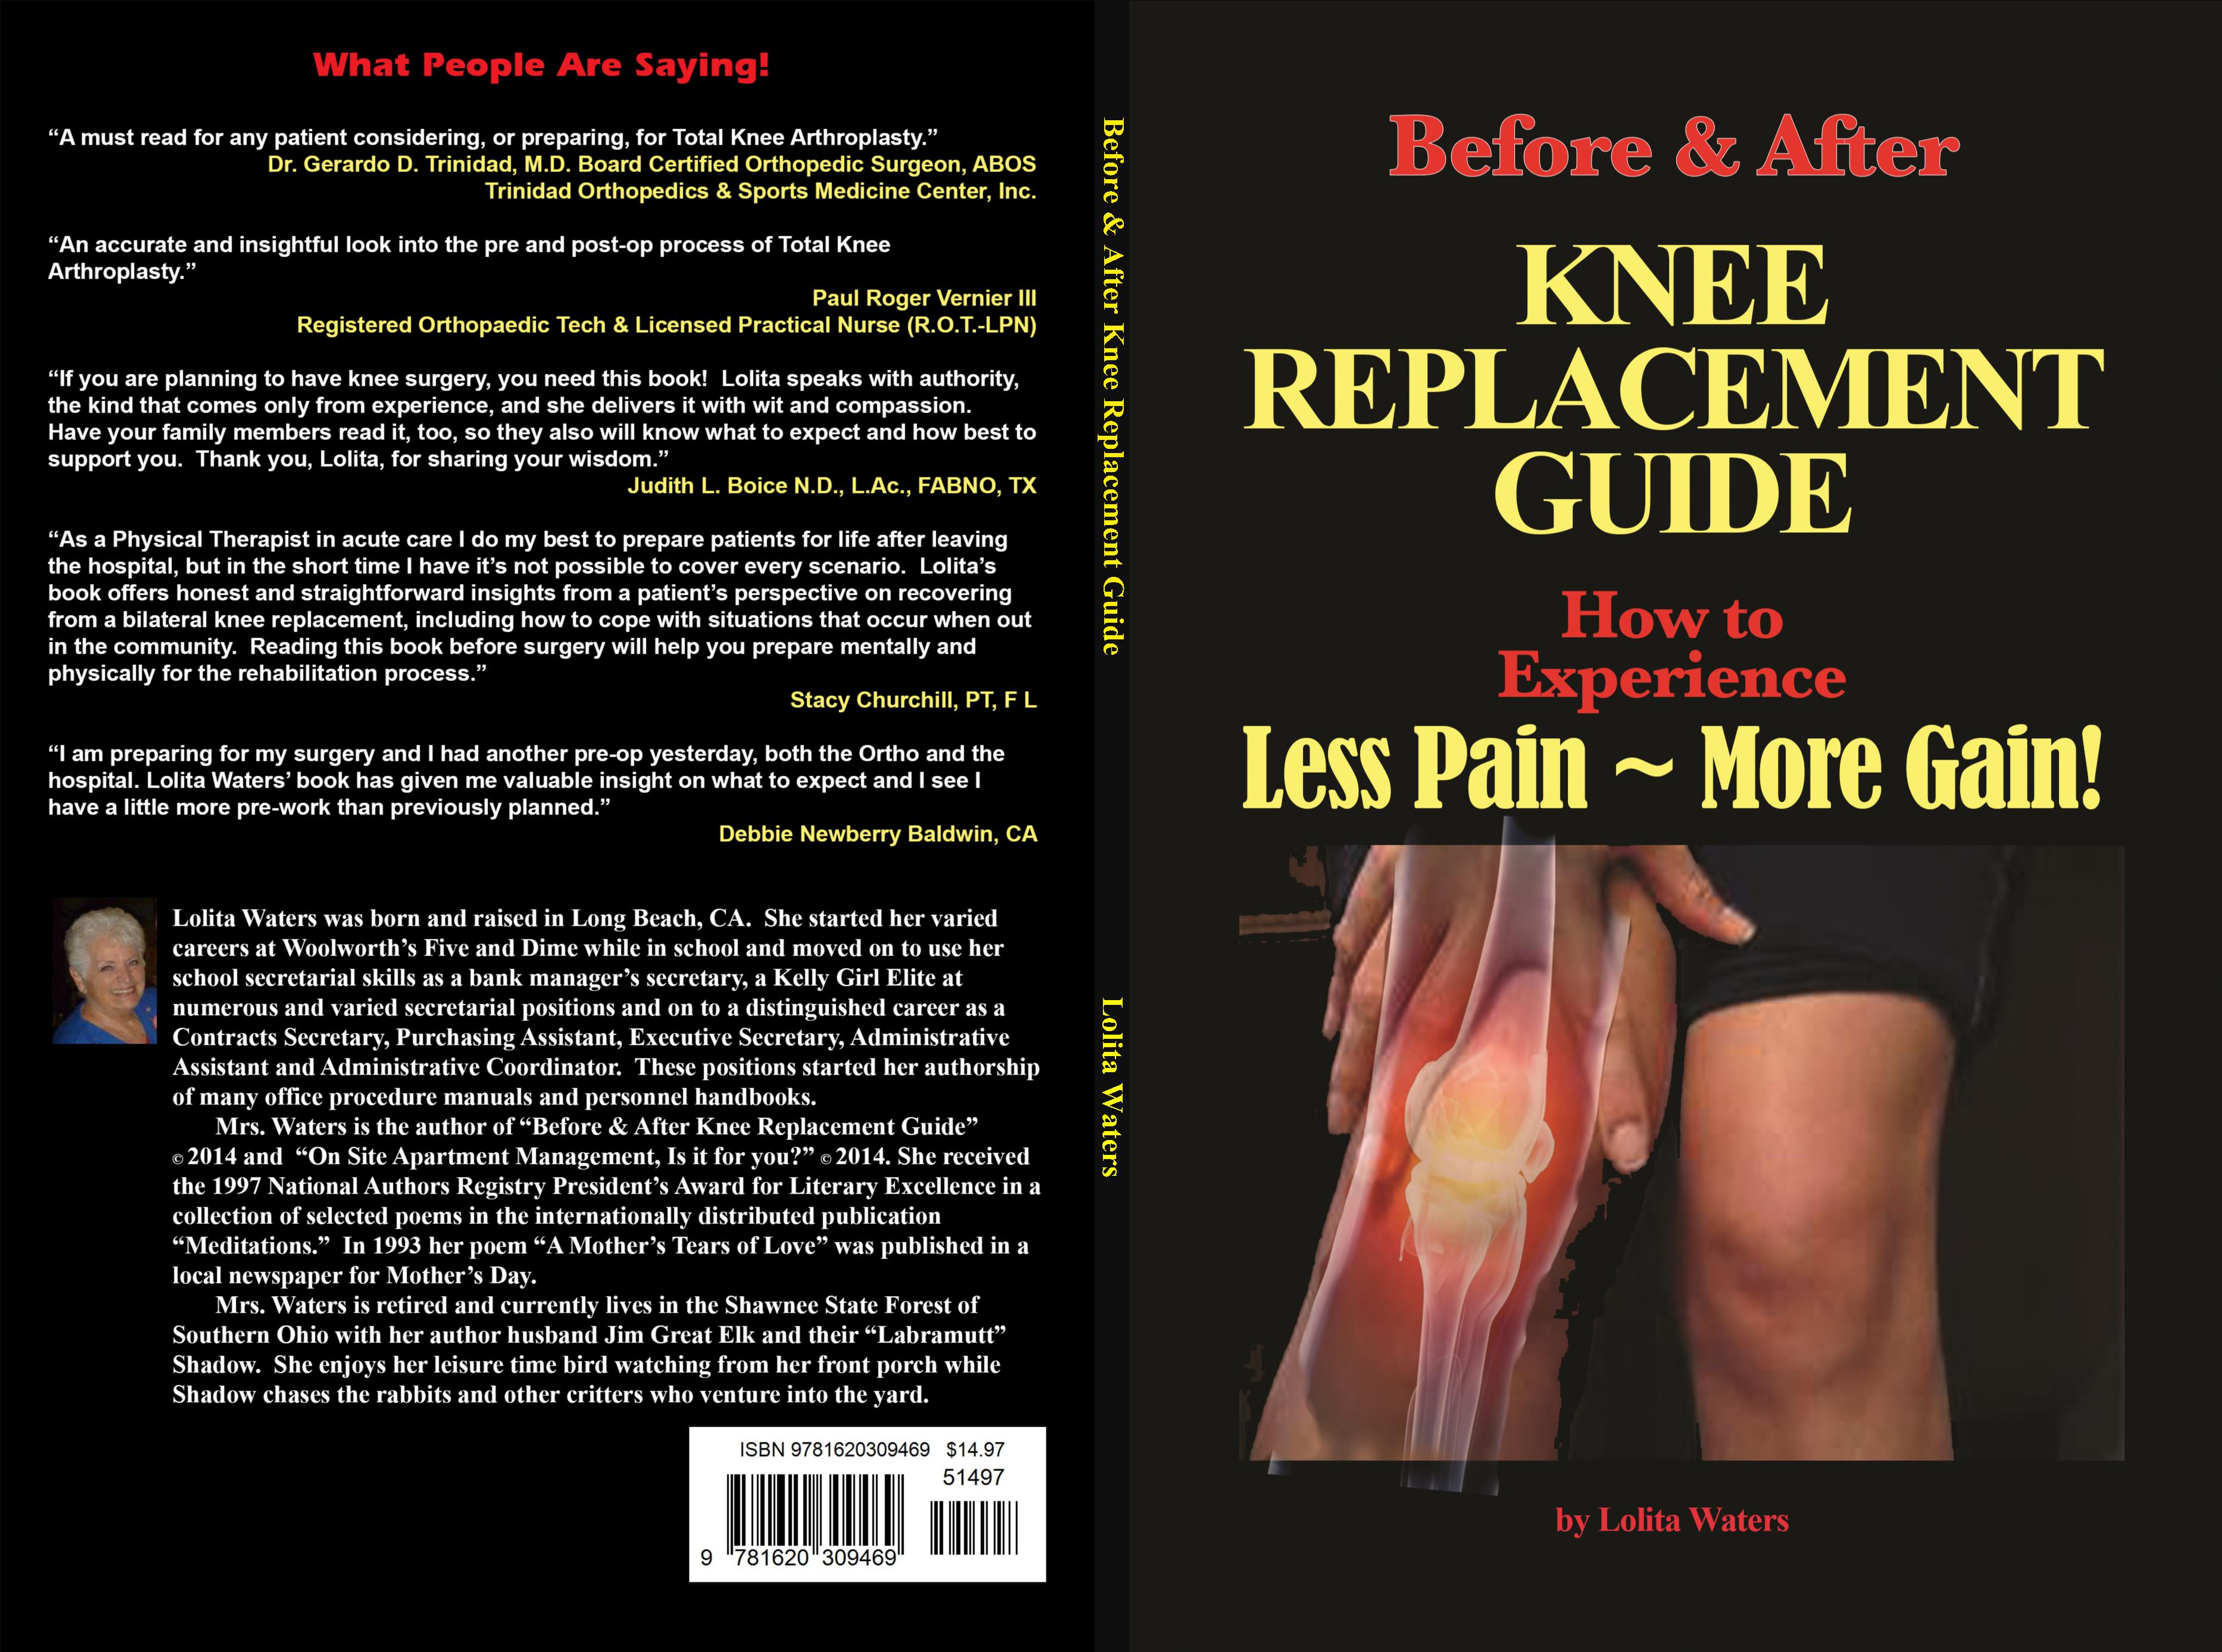 Double Knee Replacement - Tips for Less Pain & More gain! cover image